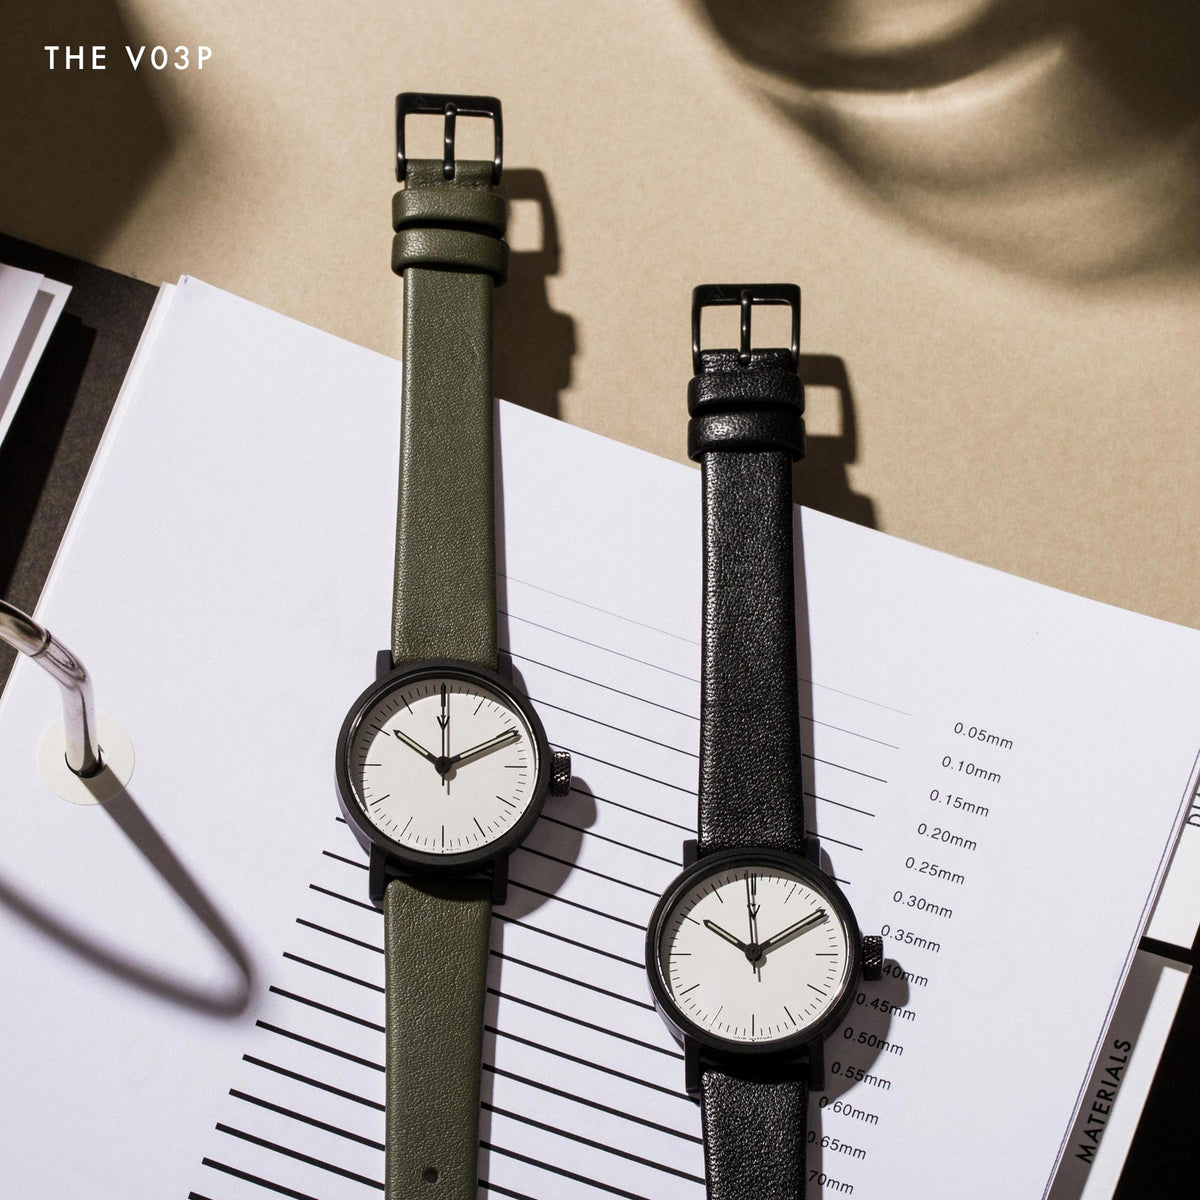 The Petite Ladies watch also known as the V03P has a 28mm case and comes in black, copper, and gold.